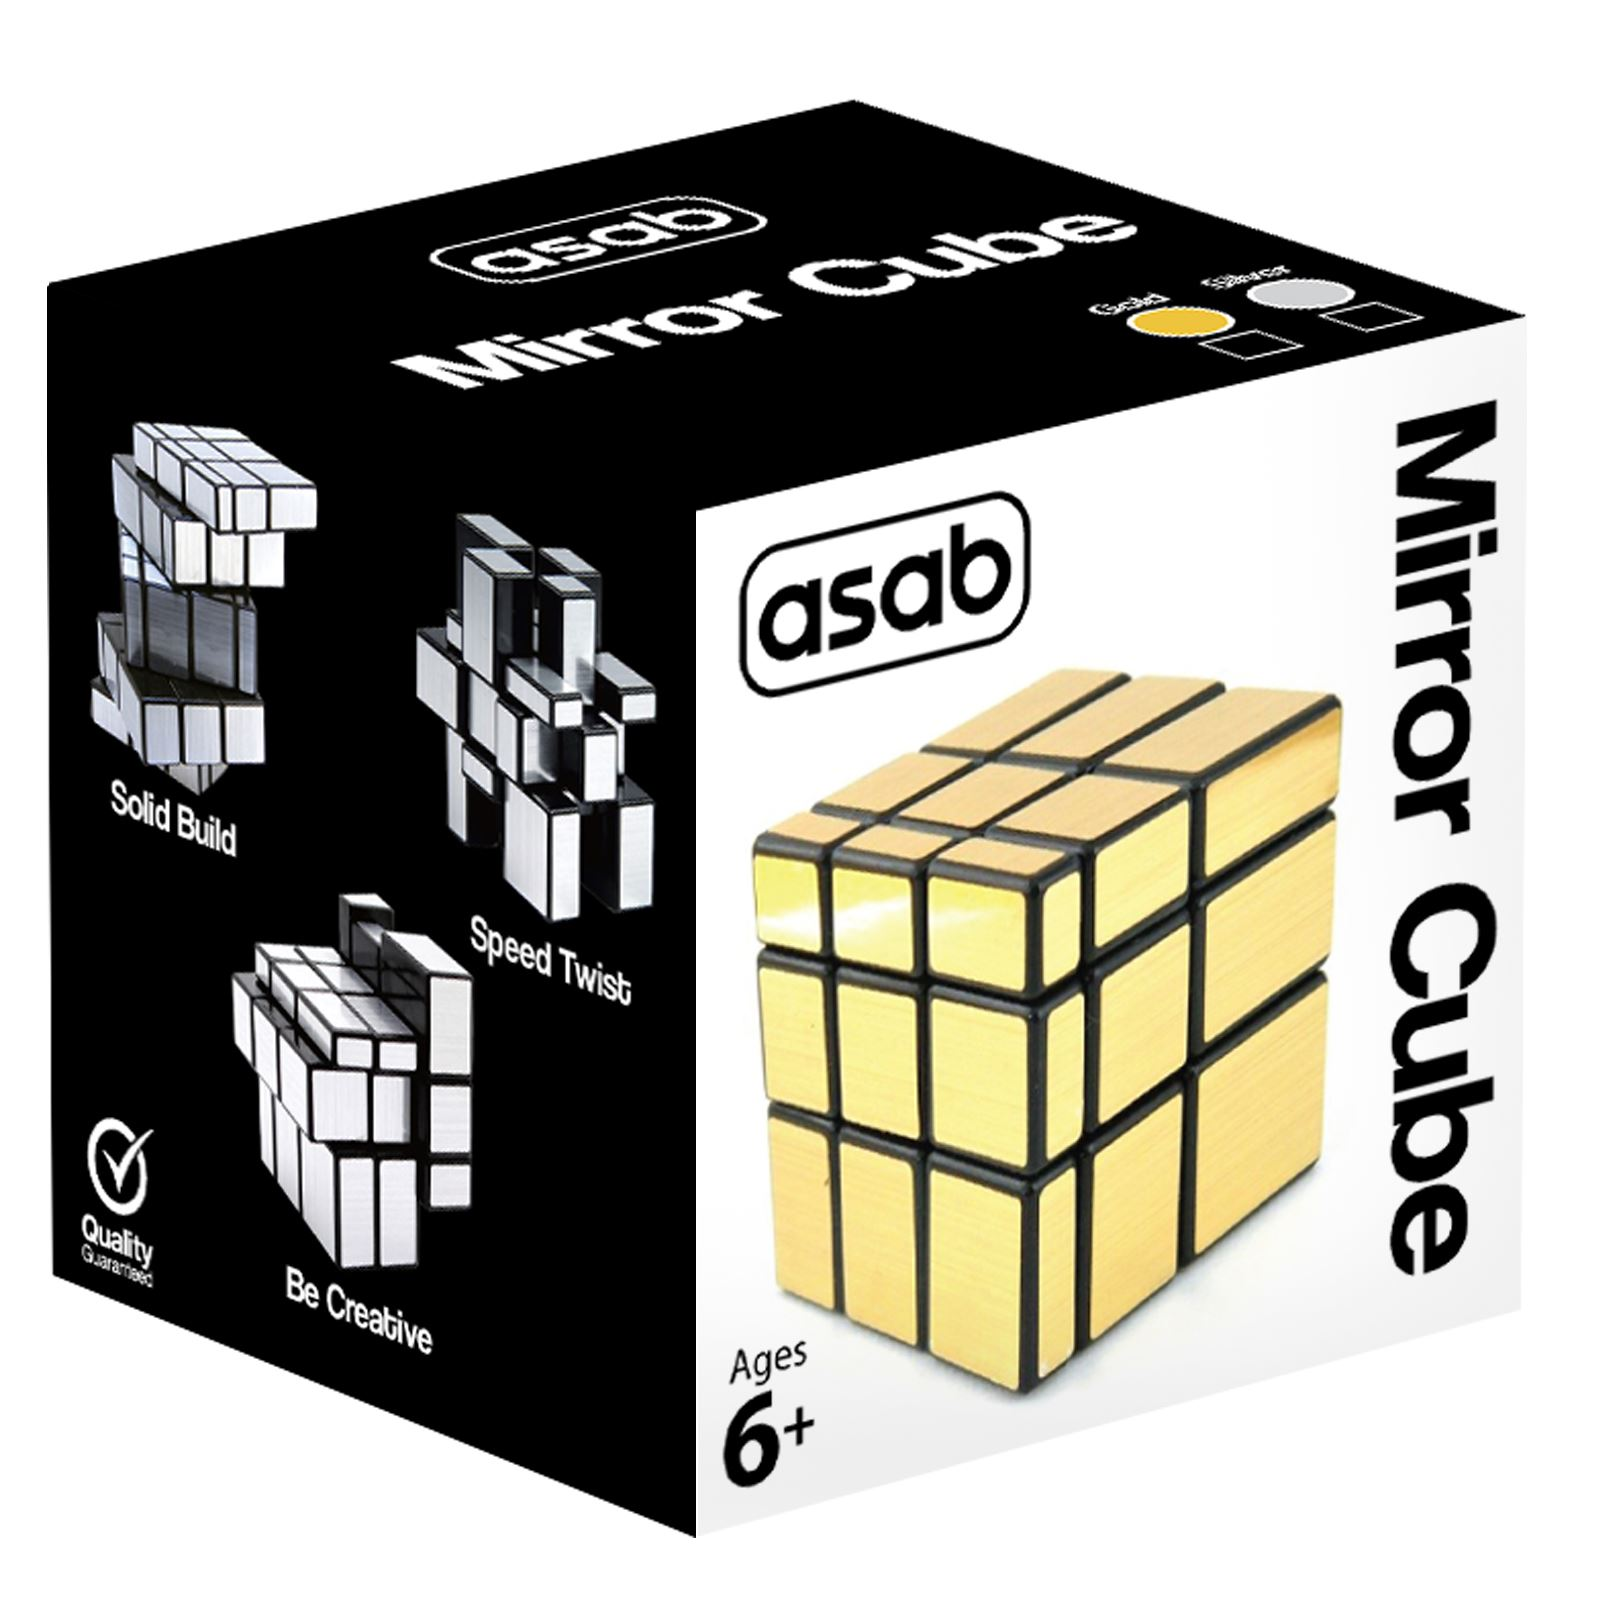 3x3-Miroir-Cube-Puzzle-Mind-Game-Brain-Teasers-Magic-scies-sauteuses-enfants-jouet-adulte-cadeau miniature 11